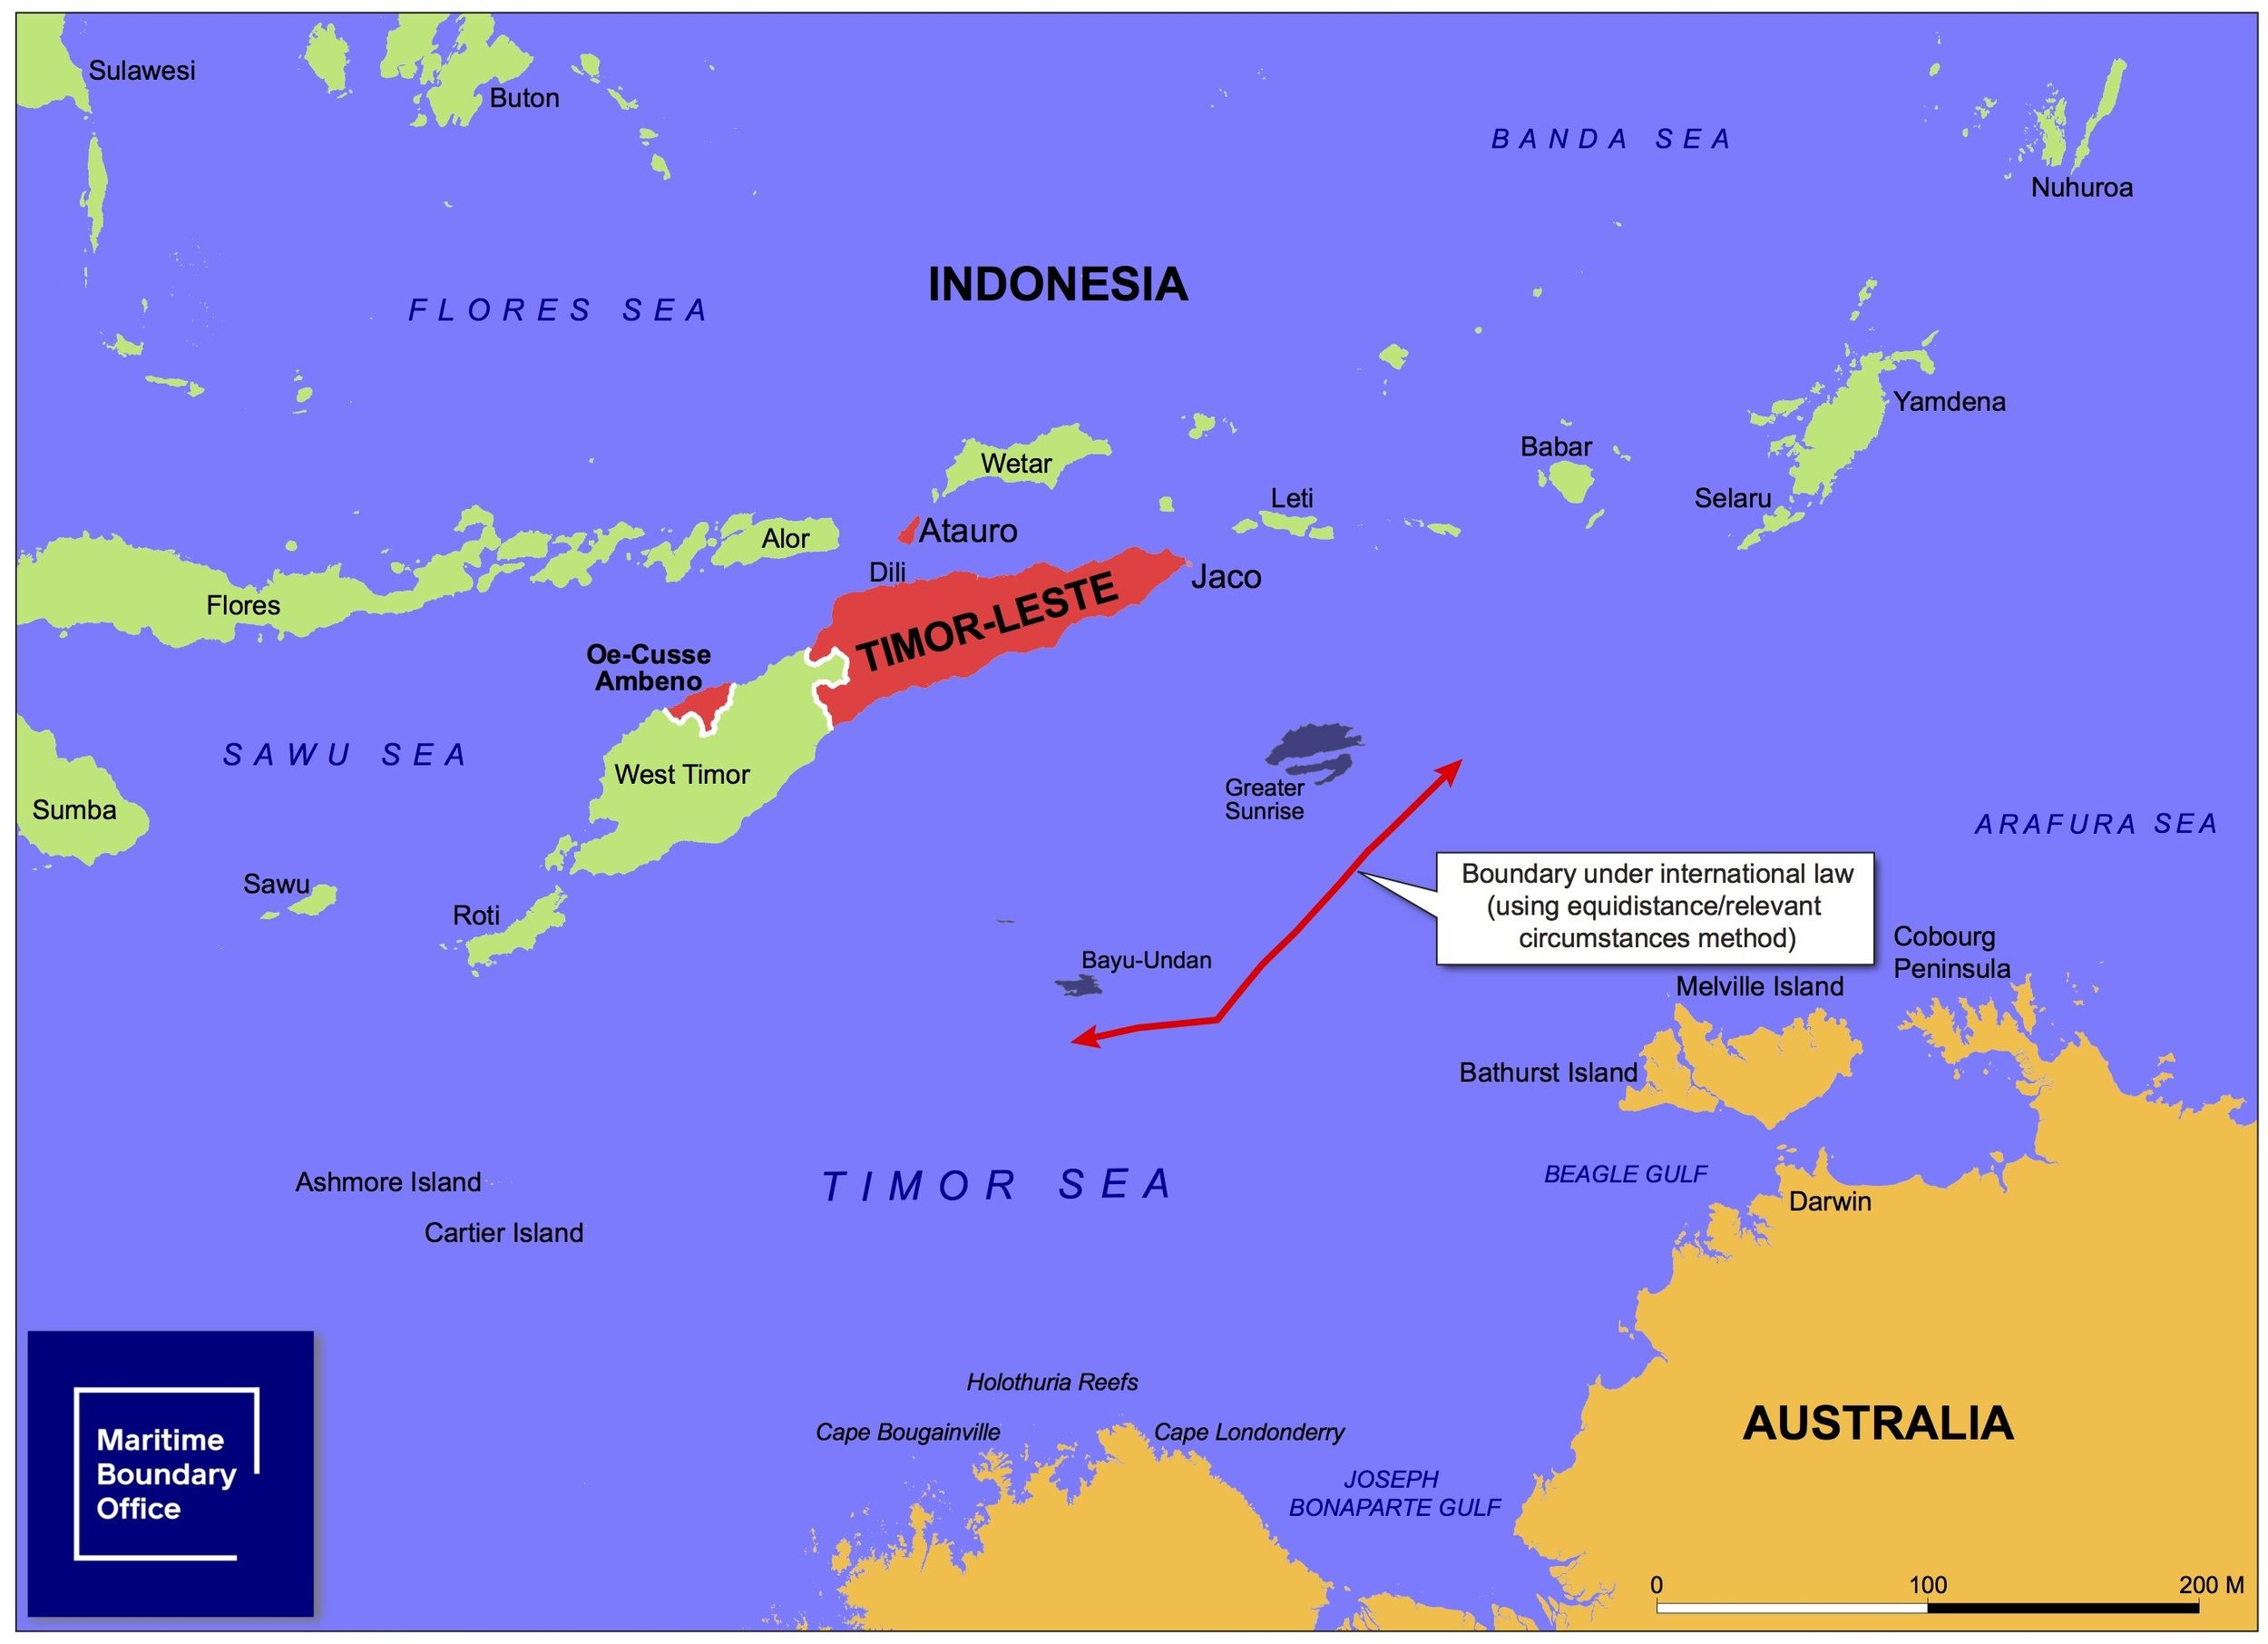 This map shows what the boundary is likely to look like according to the application of international law - courtesy of Timor-Leste's  Maritime Boundary Office